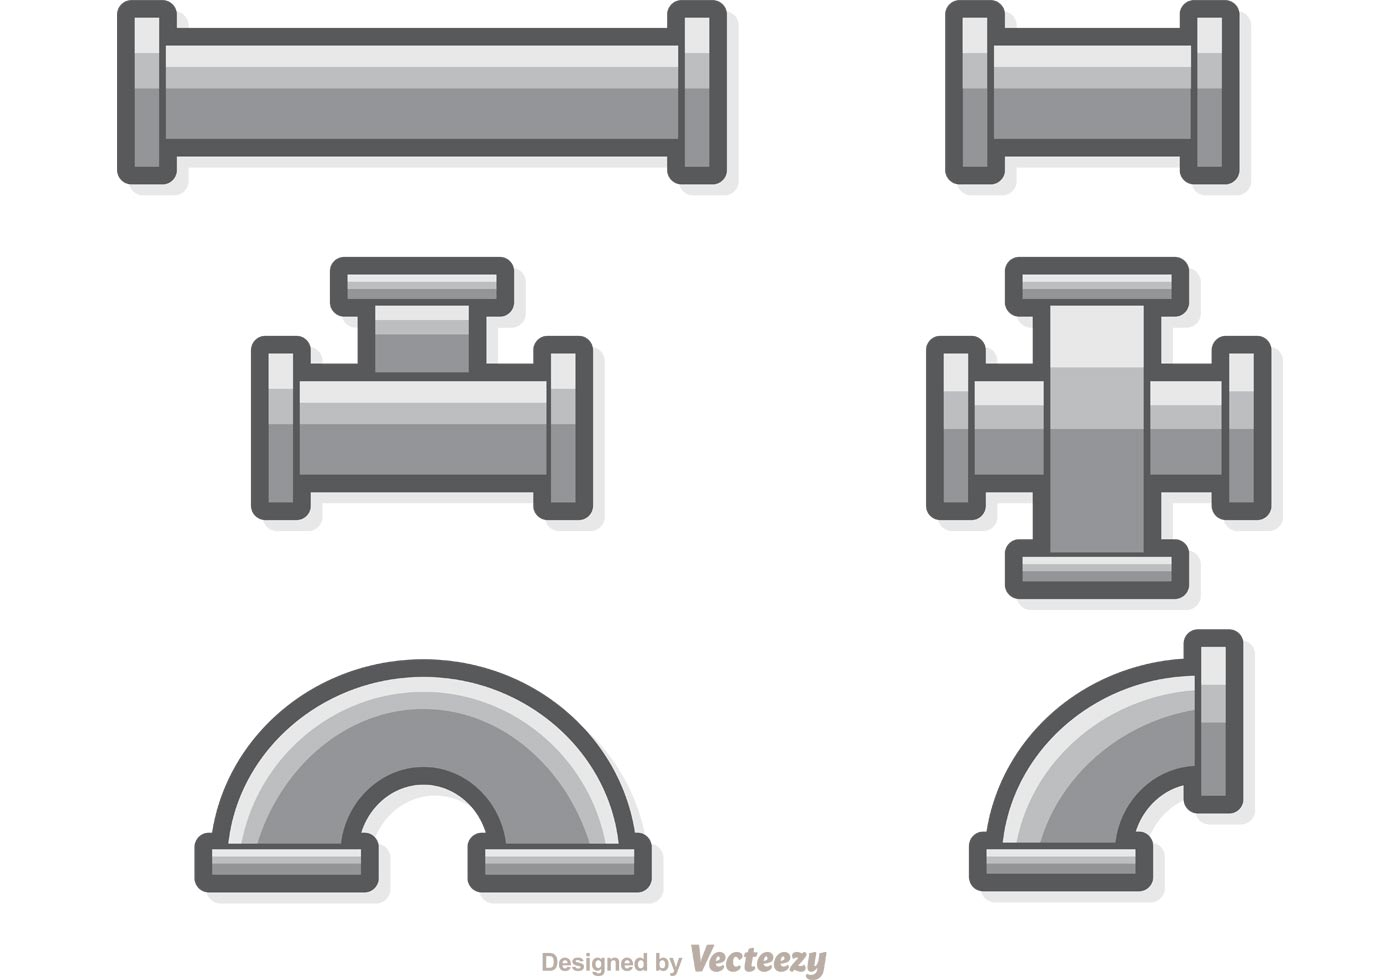 Sewer Pipe Set Vector - Download Free Vectors, Clipart ...